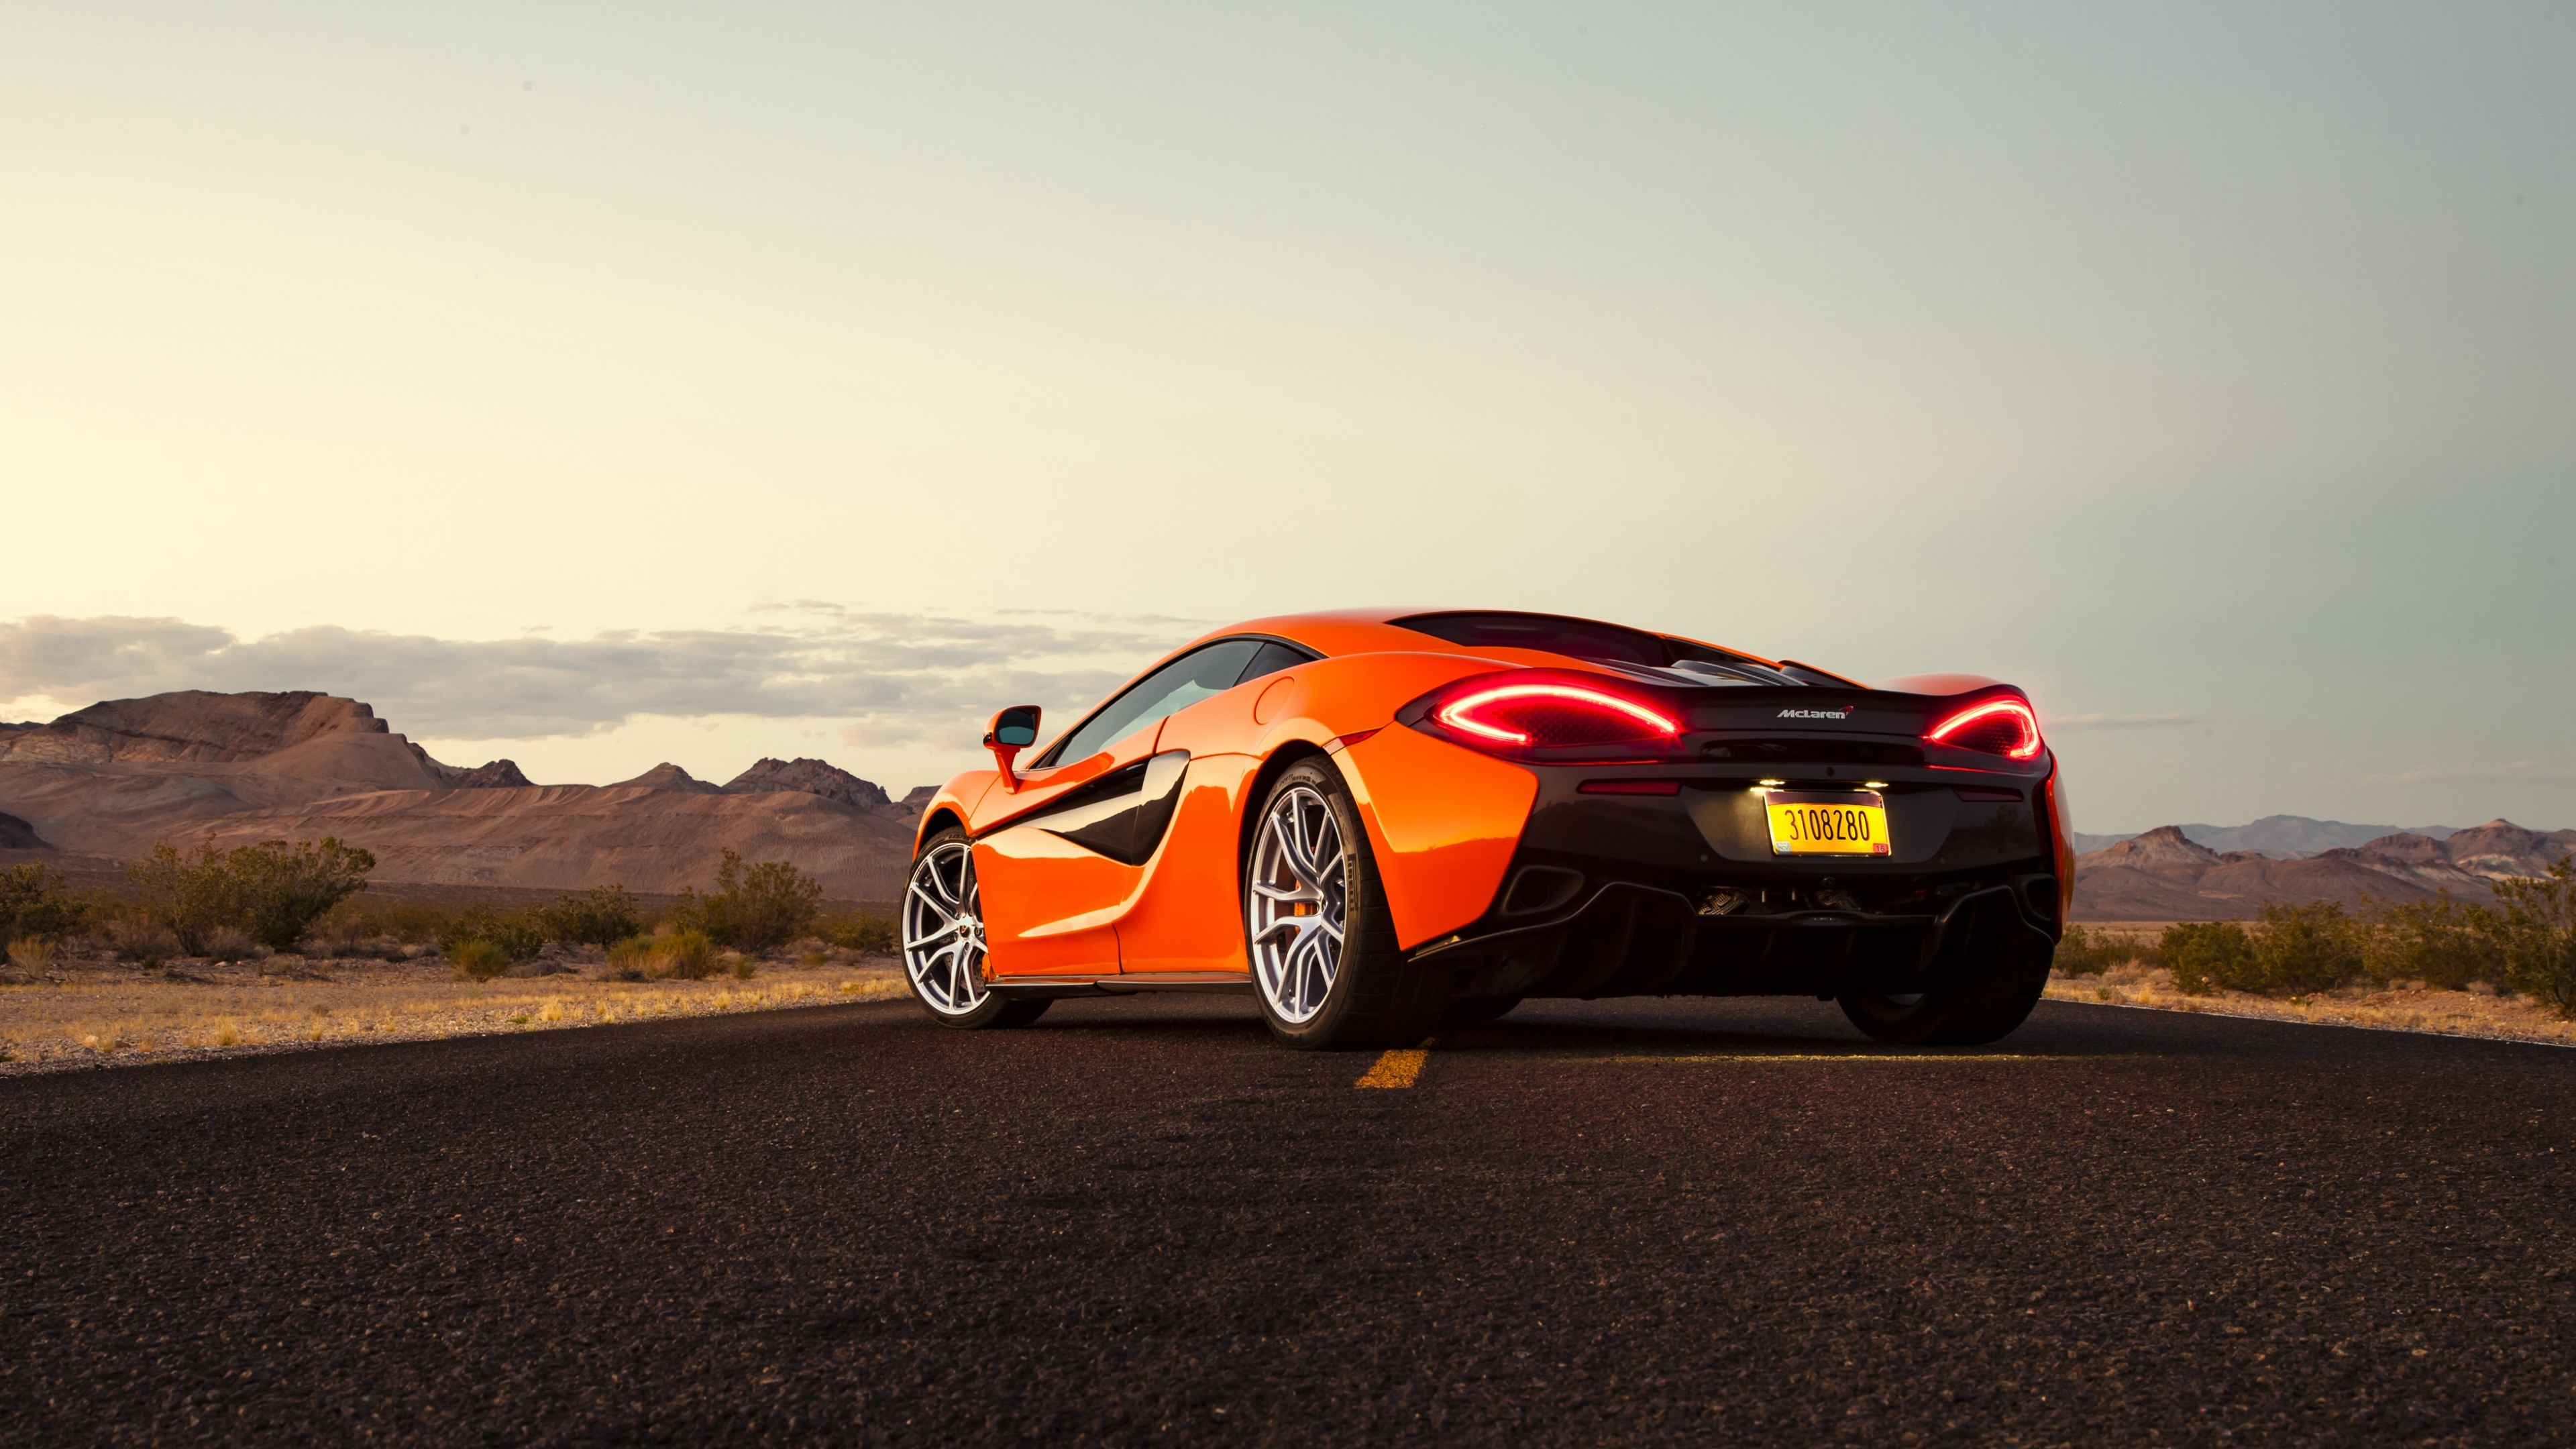 4K Ultra HD Mclaren 570S Wallpaper